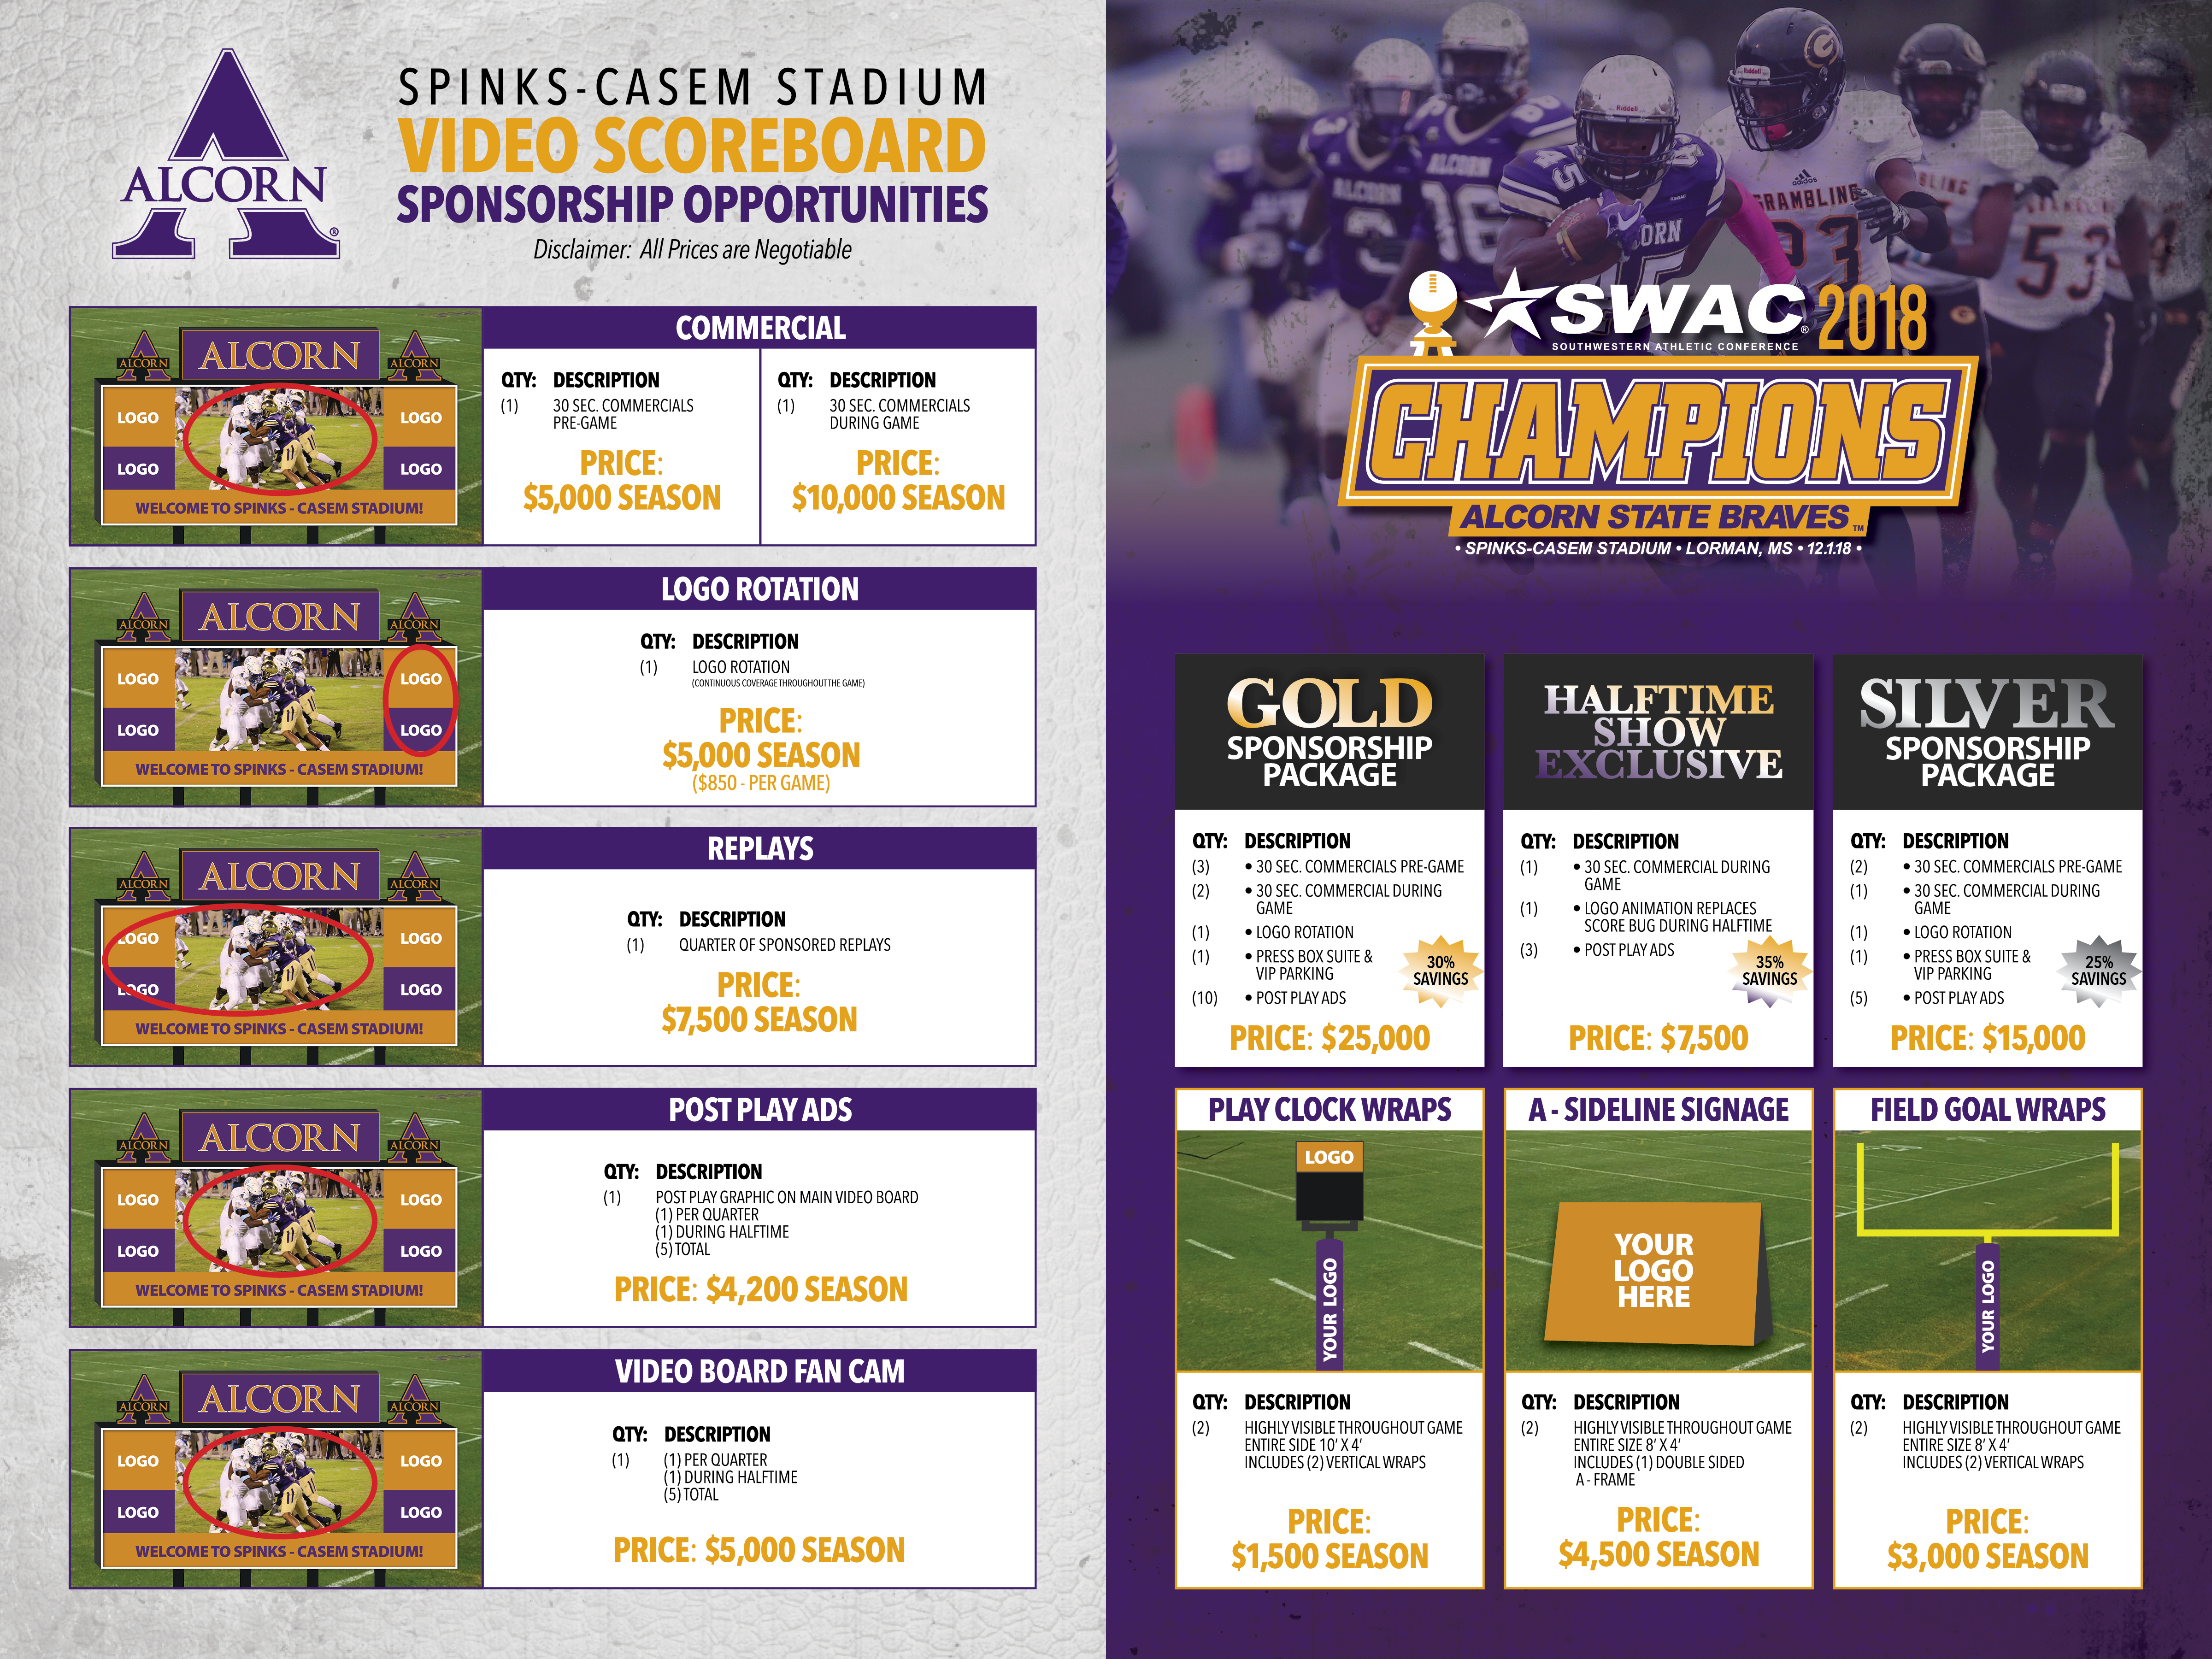 Alcorn State video scoreboard sponsorship opportunities graphic with prices